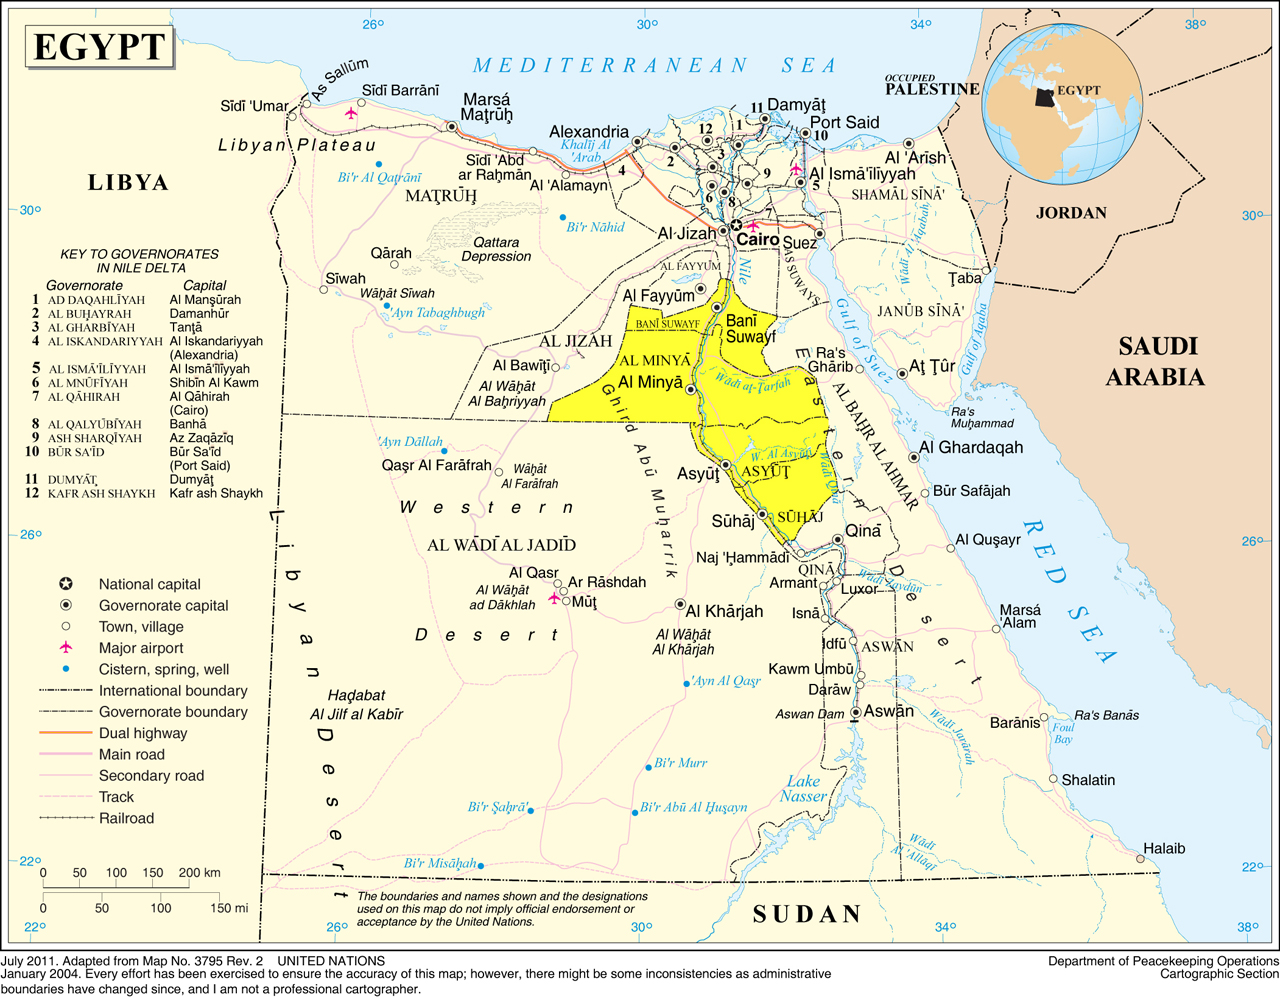 The Nile Valley: Middle Egypt | Al Rahalah